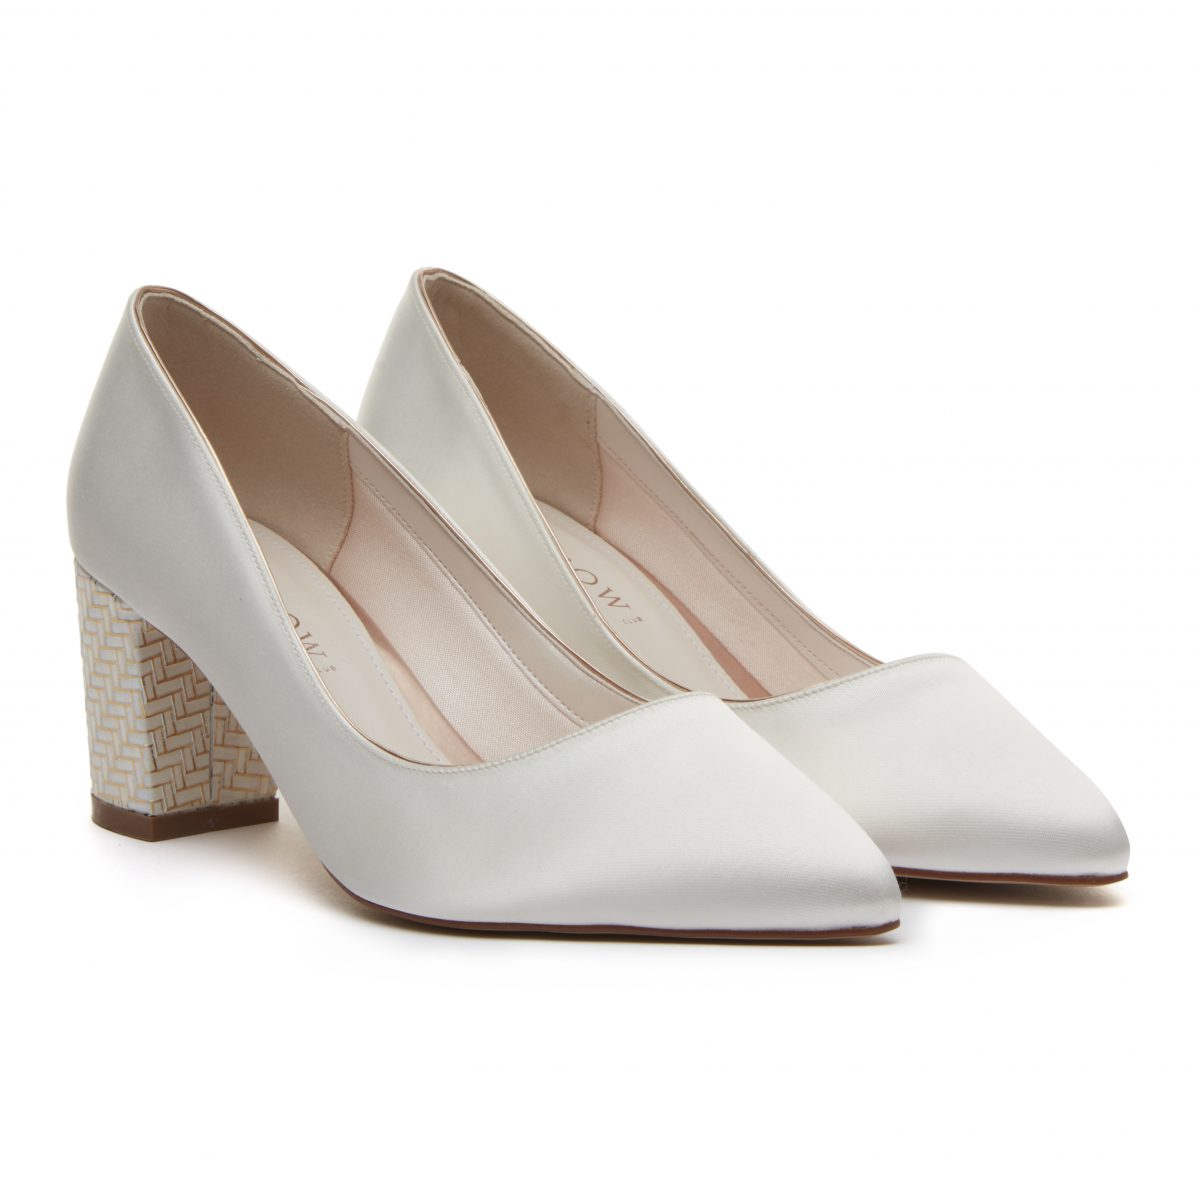 Rainbow Club Bambi - Ivory Satin & Parquet Heel Court Shoe 1